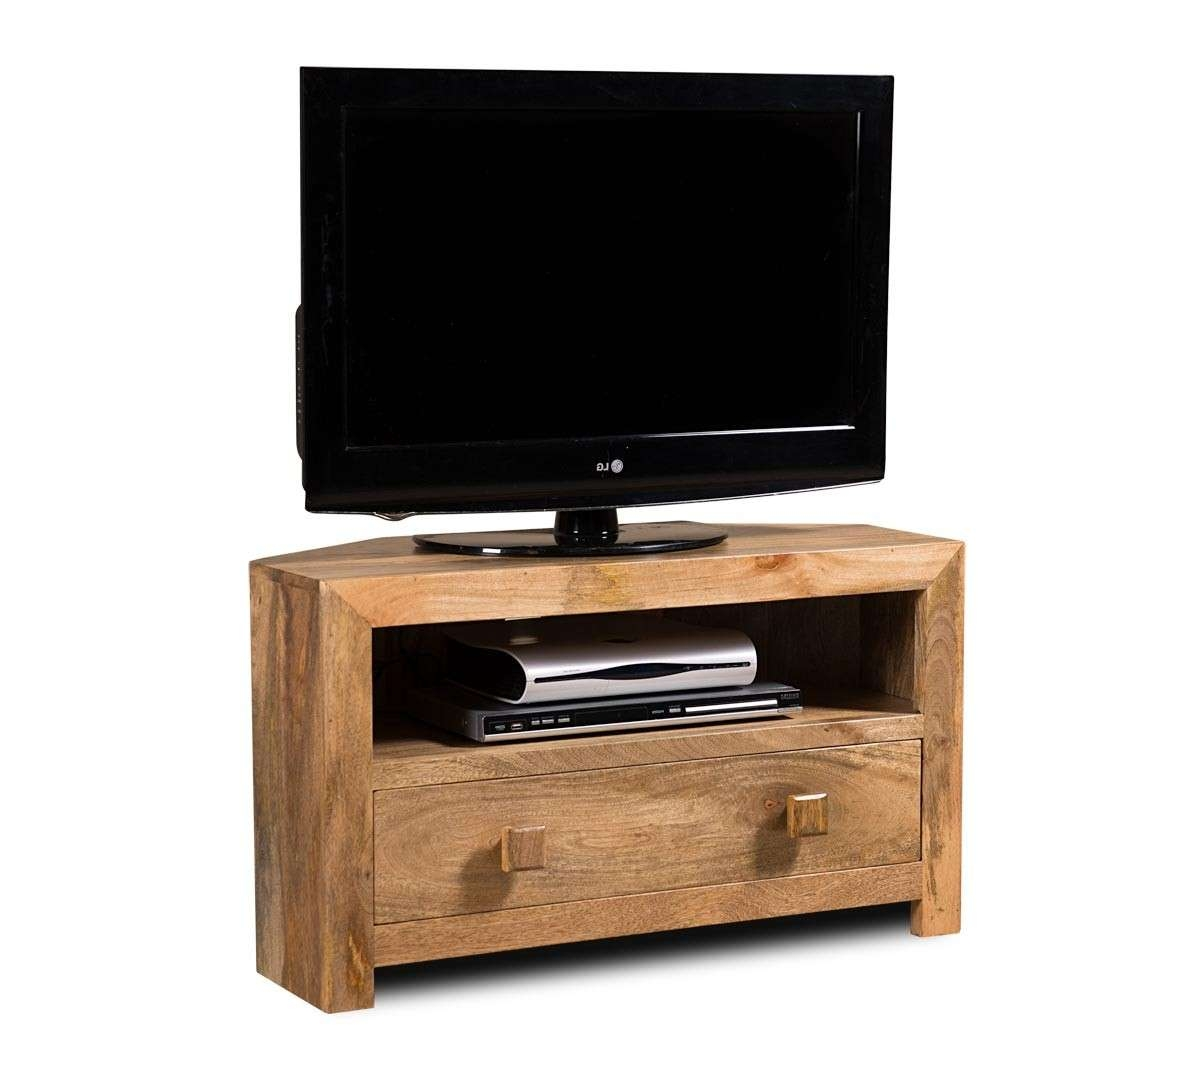 Wooden Corner Tv Stand With Fireplace Decofurnish Inspirations With Wooden Corner Tv Stands (View 15 of 15)